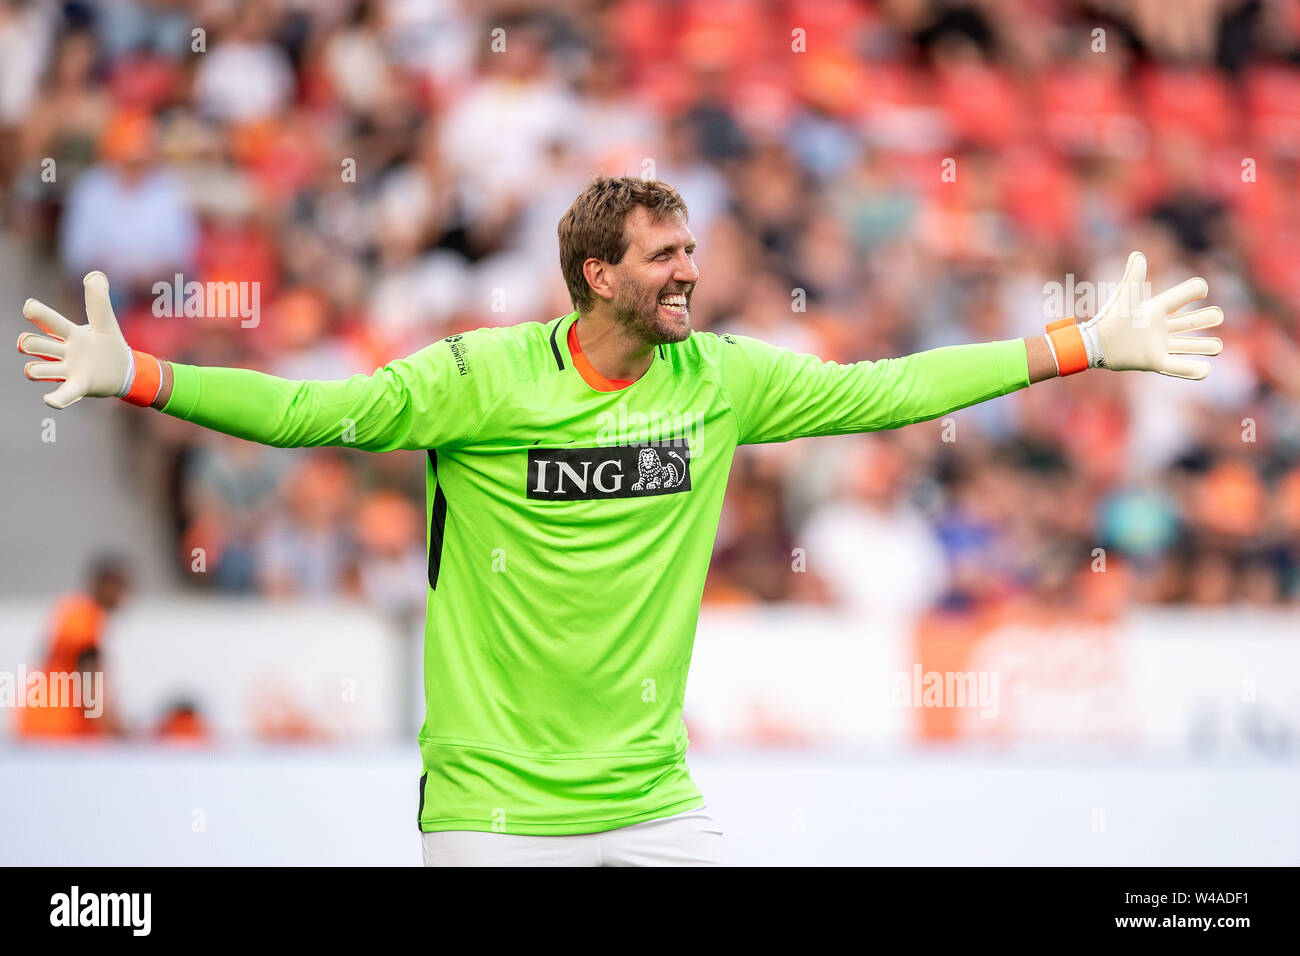 Leverkusen, Germany. 21st July, 2019. Soccer: Benefit soccer game 'Champions for Charity' in the BayArena. The former basketball player Dirk Nowitzki cheers after a parade. Credit: Marius Becker/dpa/Alamy Live News - Stock Image